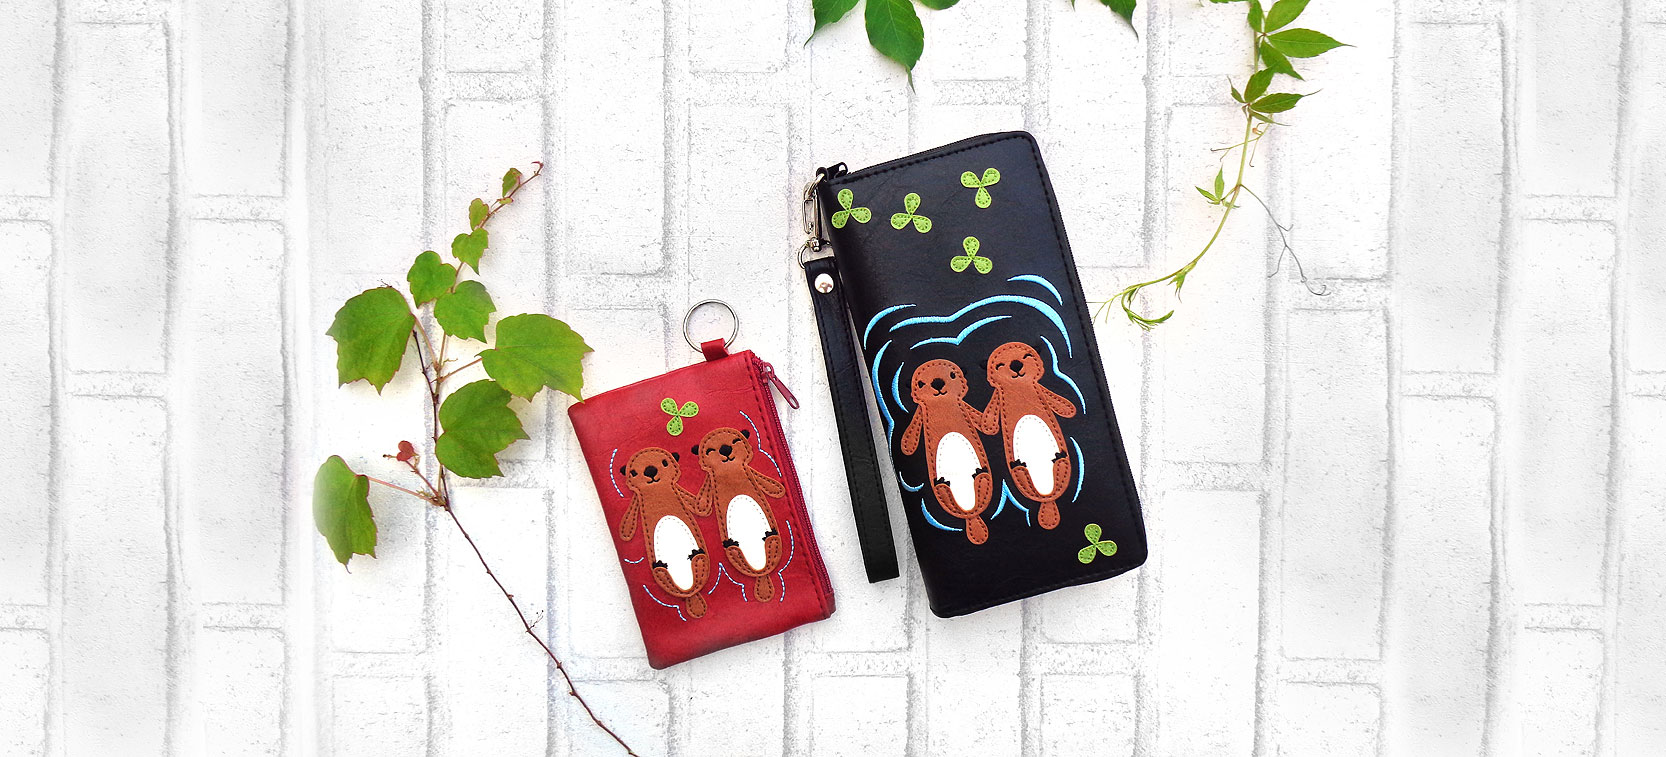 LAVISHY design and wholesale Coastal themed vegan accessories and gfits to gift shops, boutiques and book stores in Canada, USA and worldwide.